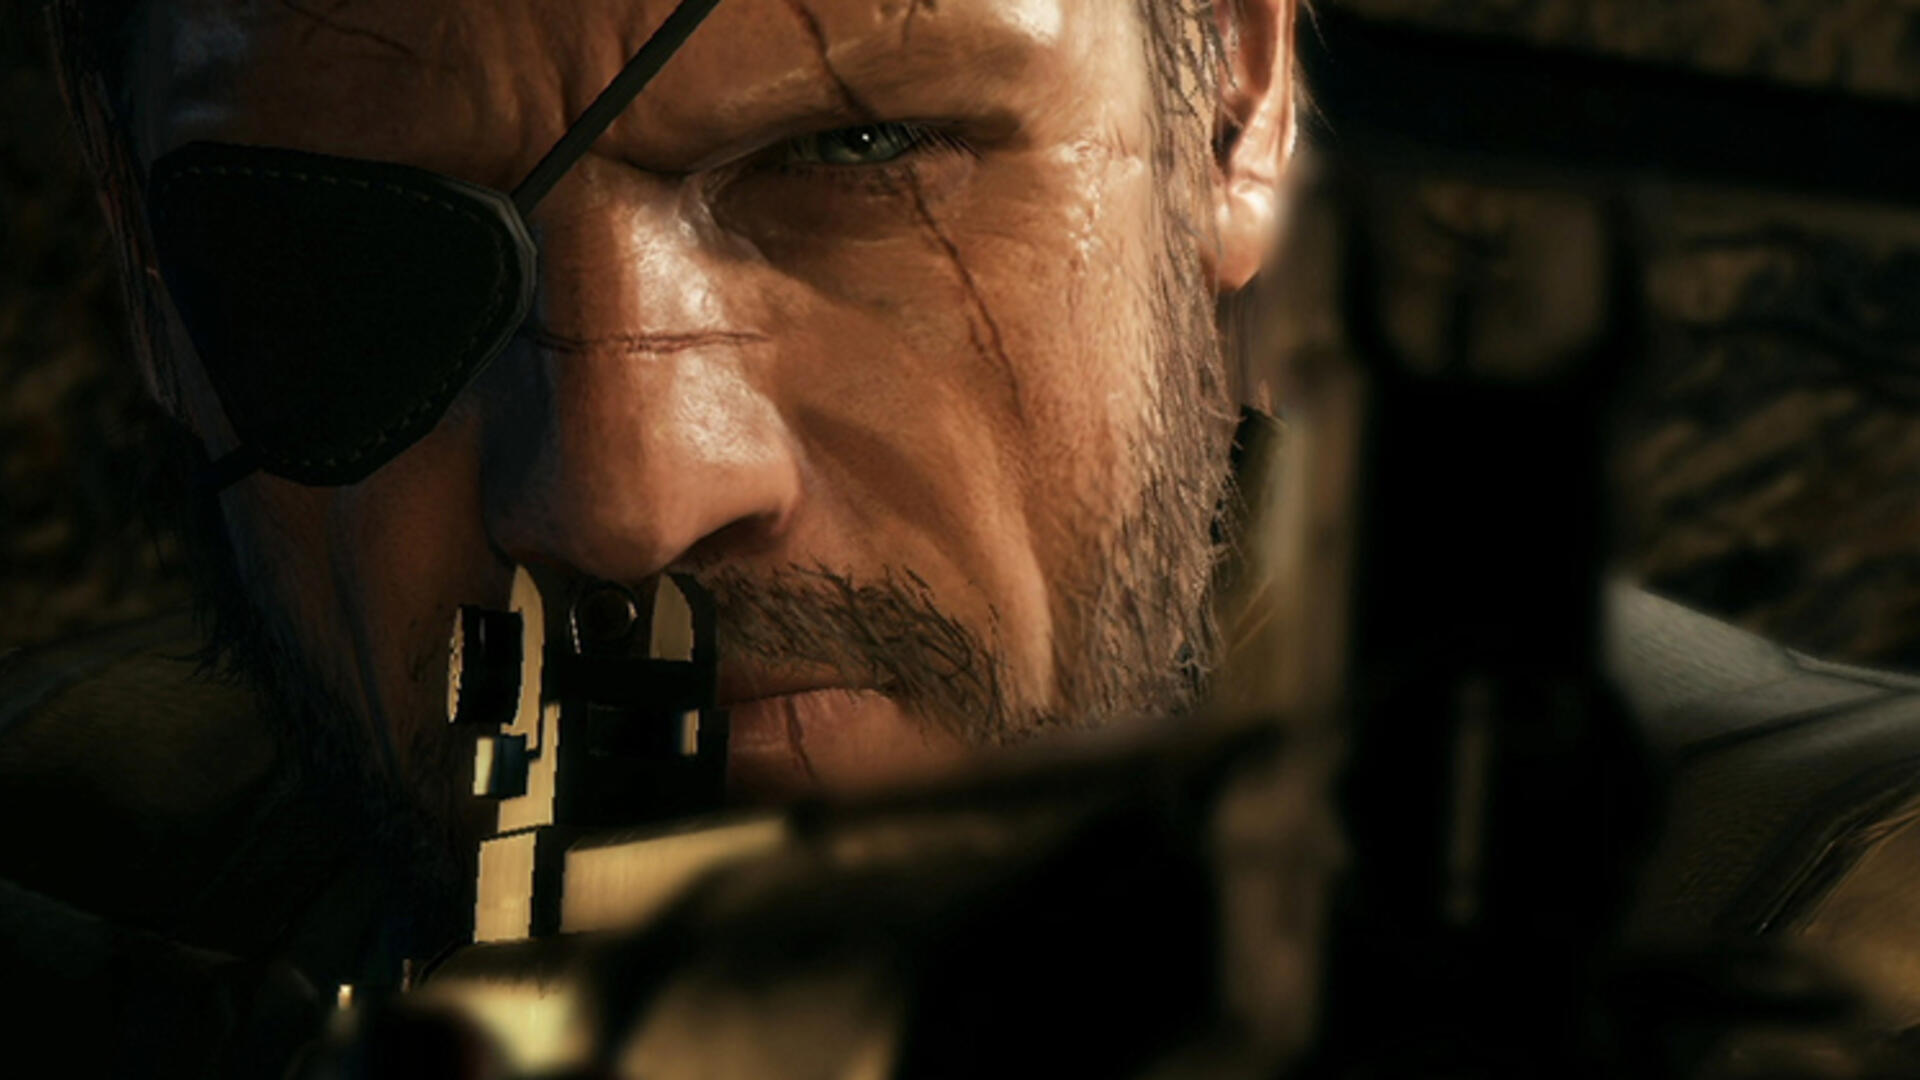 Does Metal Gear Solid V Hold Up? The Definitive Experience and the Missing Chapter